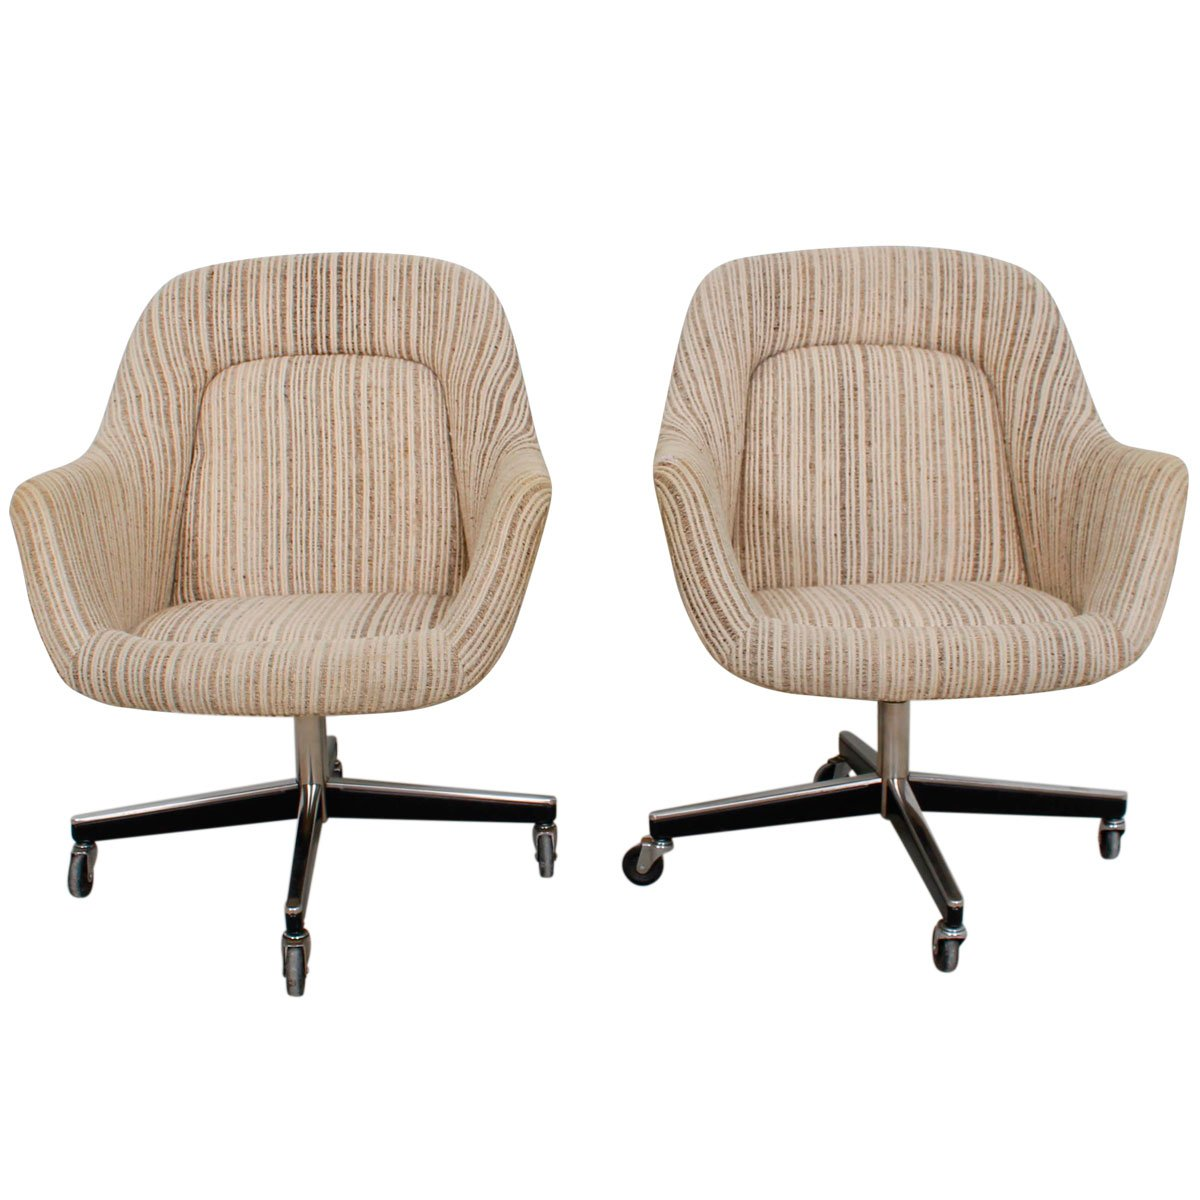 Knoll – Pair of '70s Upholstered Chairs